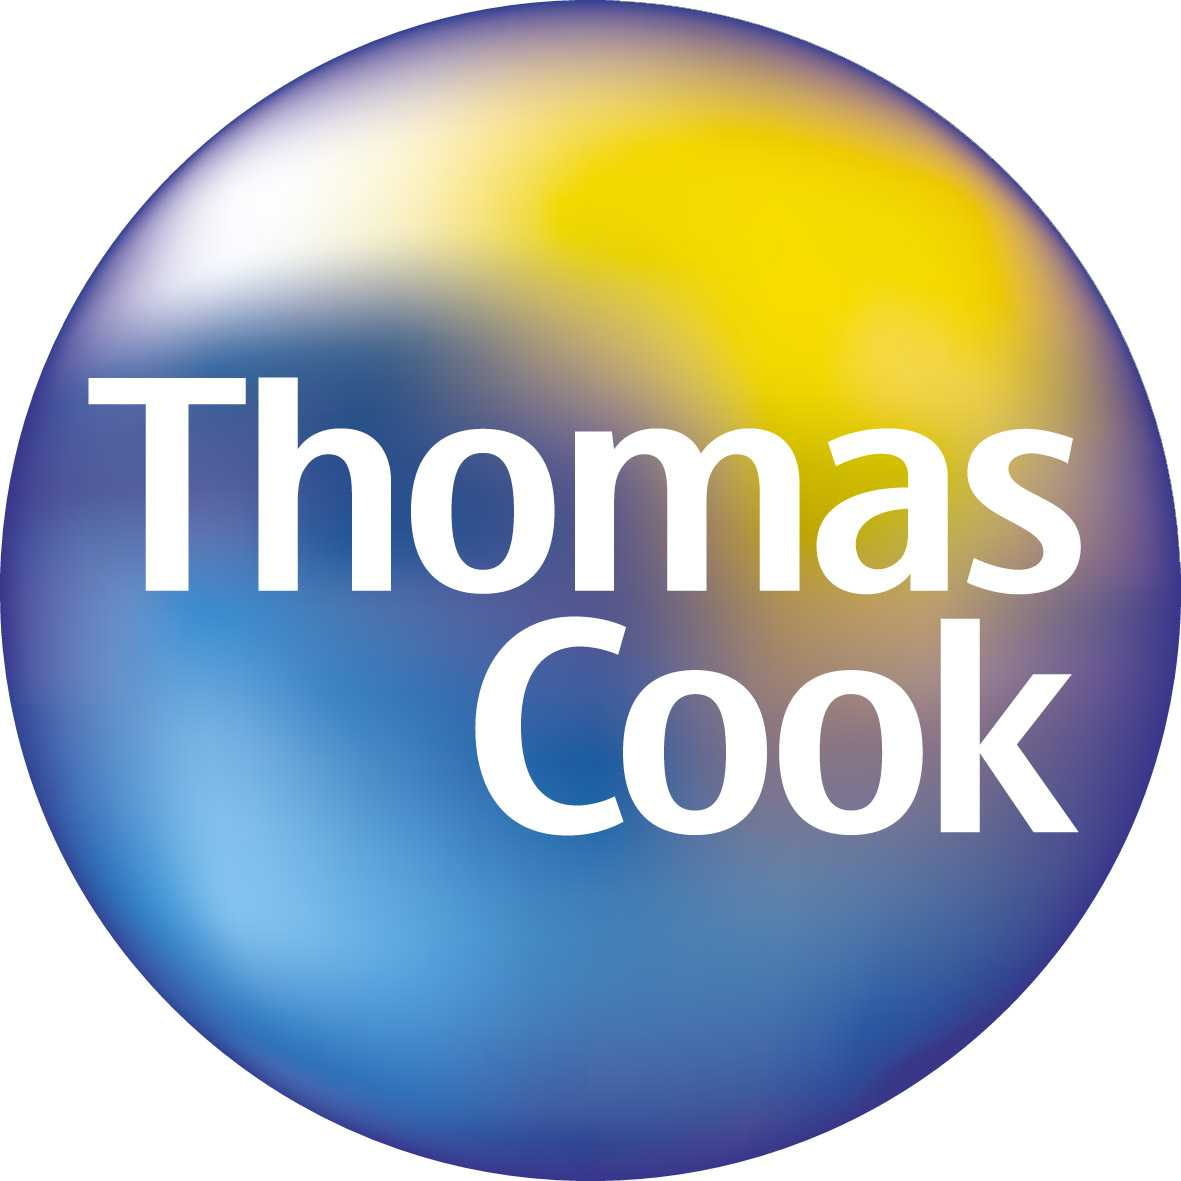 Export trade - Thomas Cook logo